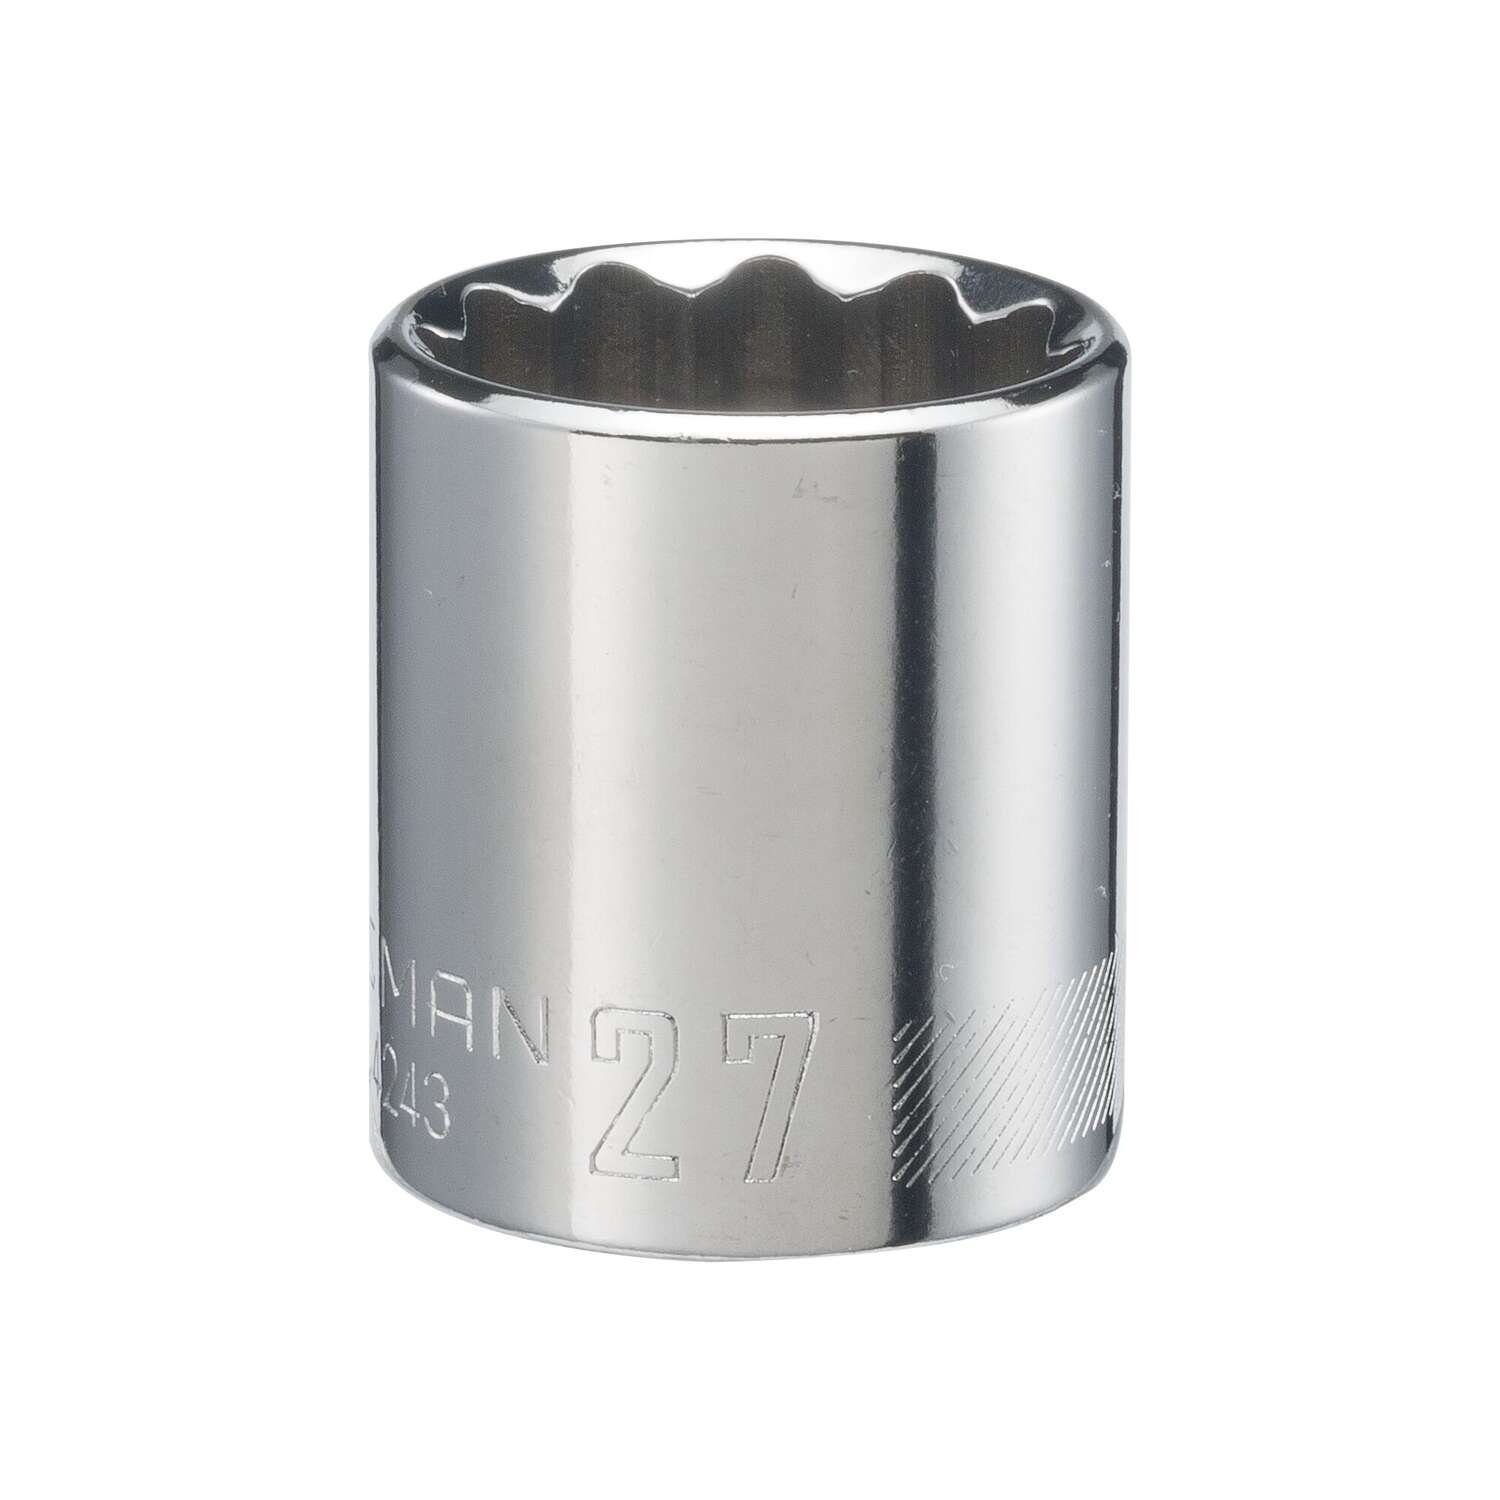 Craftsman 27 mm x 1/2 in. drive Metric 12 Point Standard Shallow Socket 1 pc.